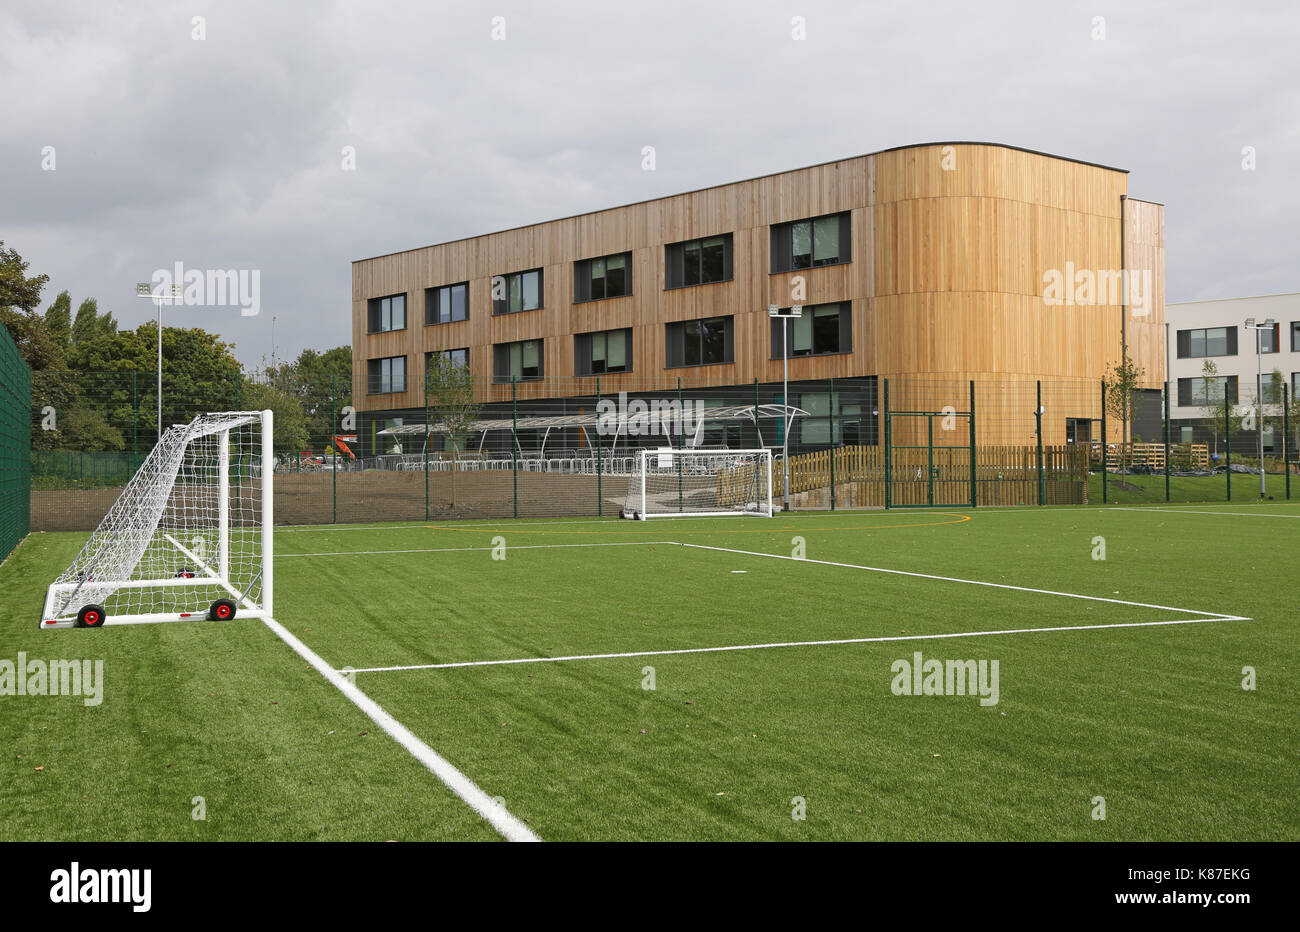 An artificial grass all-weather football pitch at a new secondary school in Slough, UK Stock Photo